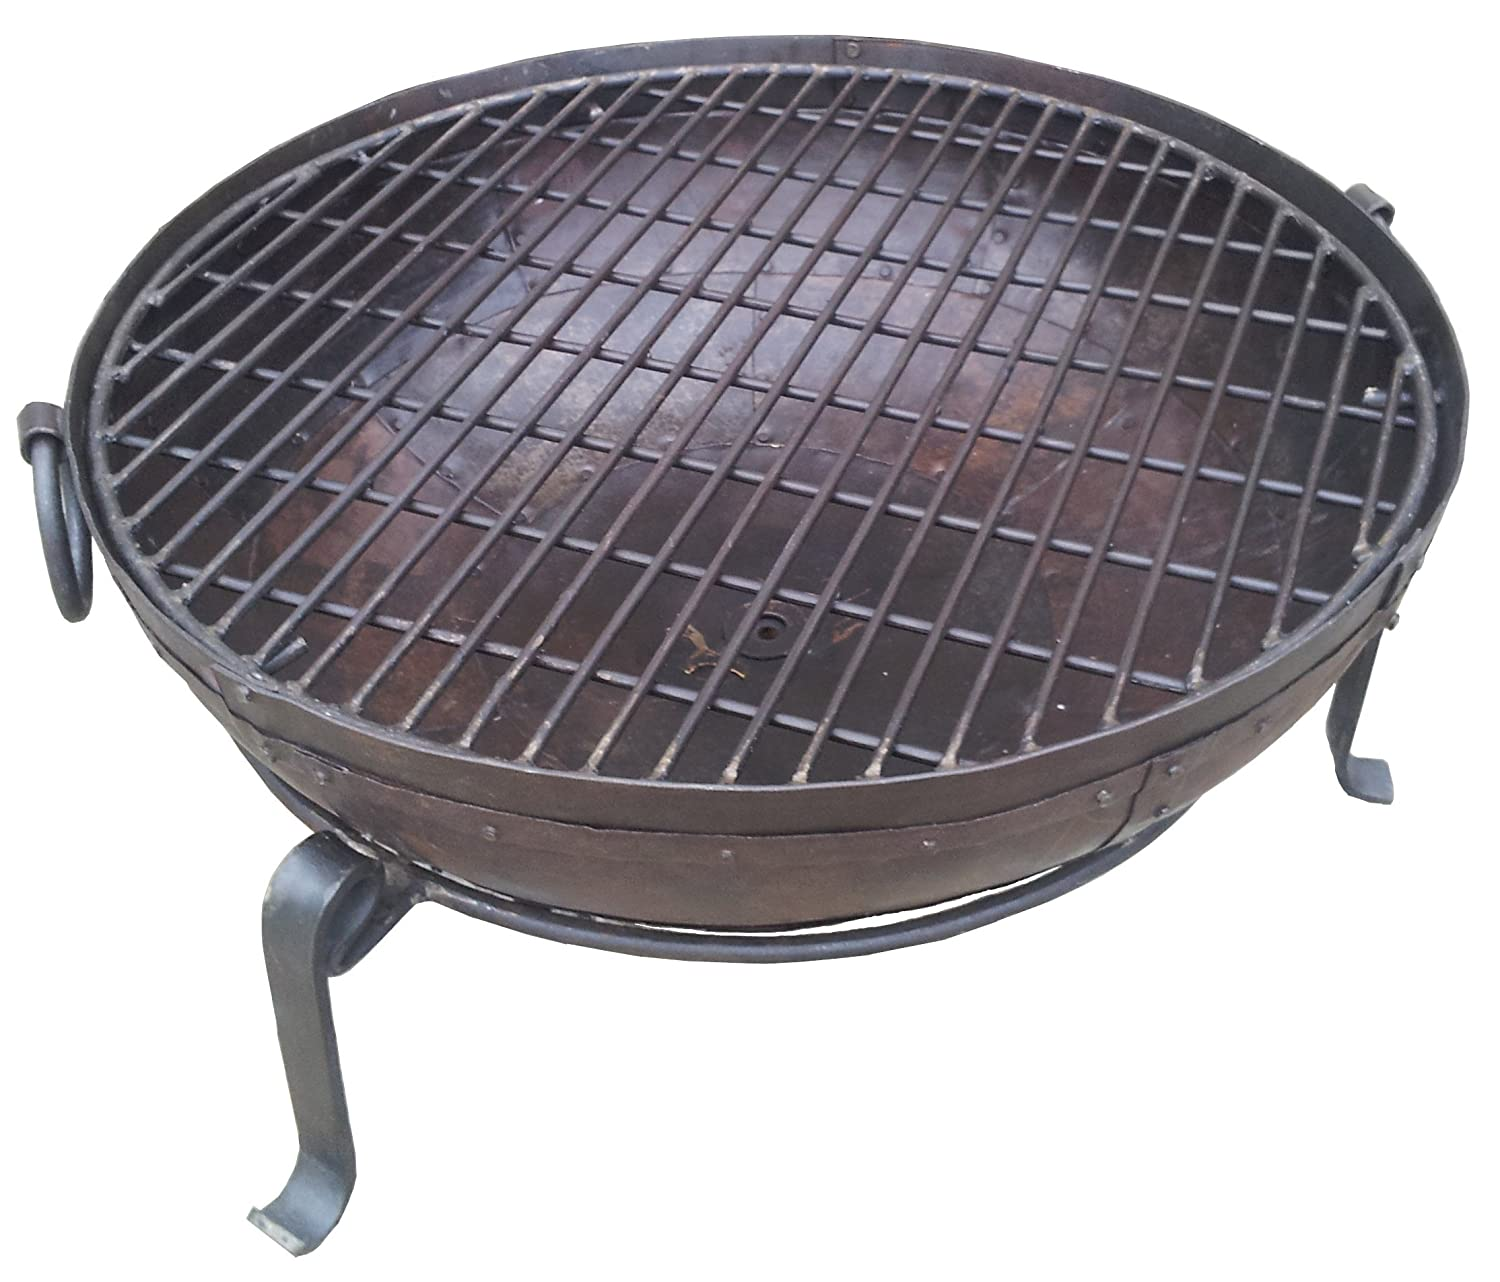 MJD Supplies Indian Fire Bowl Set With COVER (60cm bowl, grill & stand) Kadai Pit